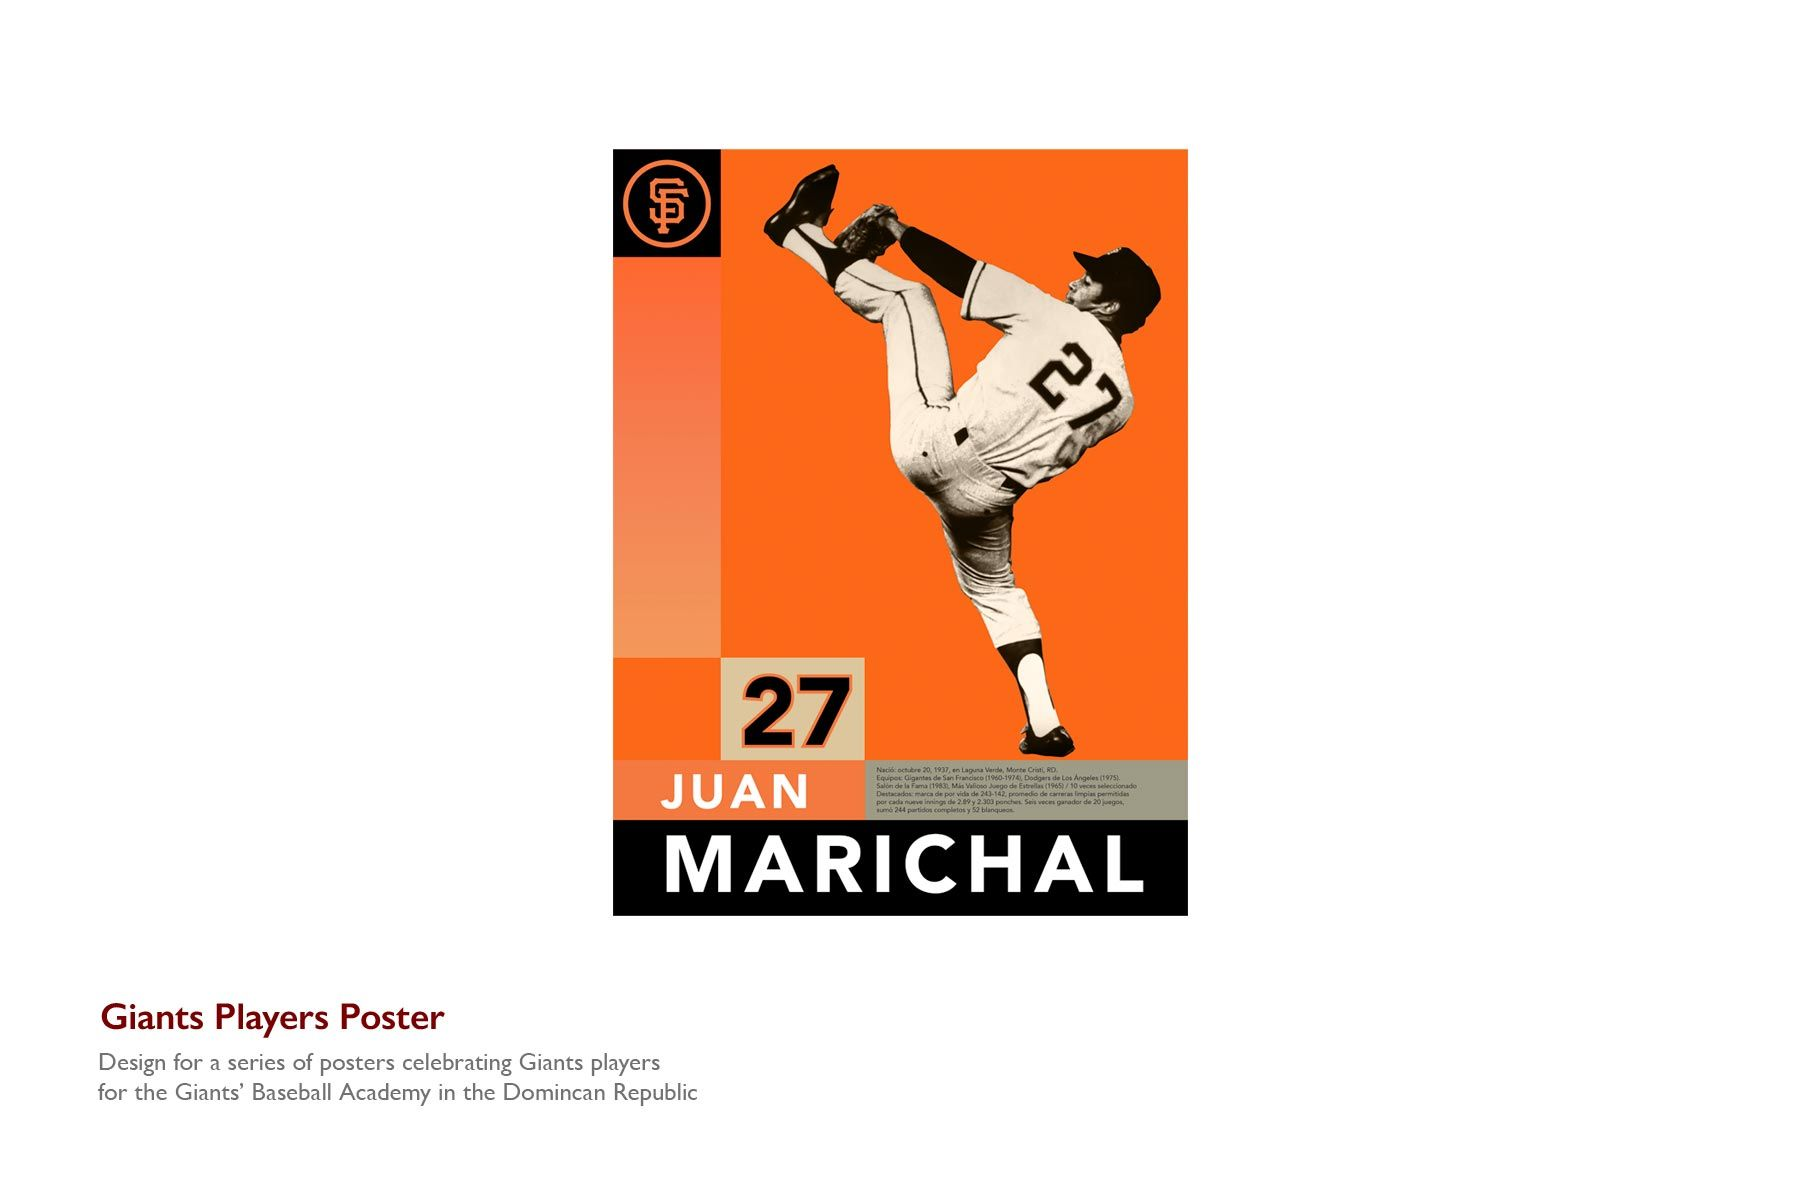 Giants Player Poster